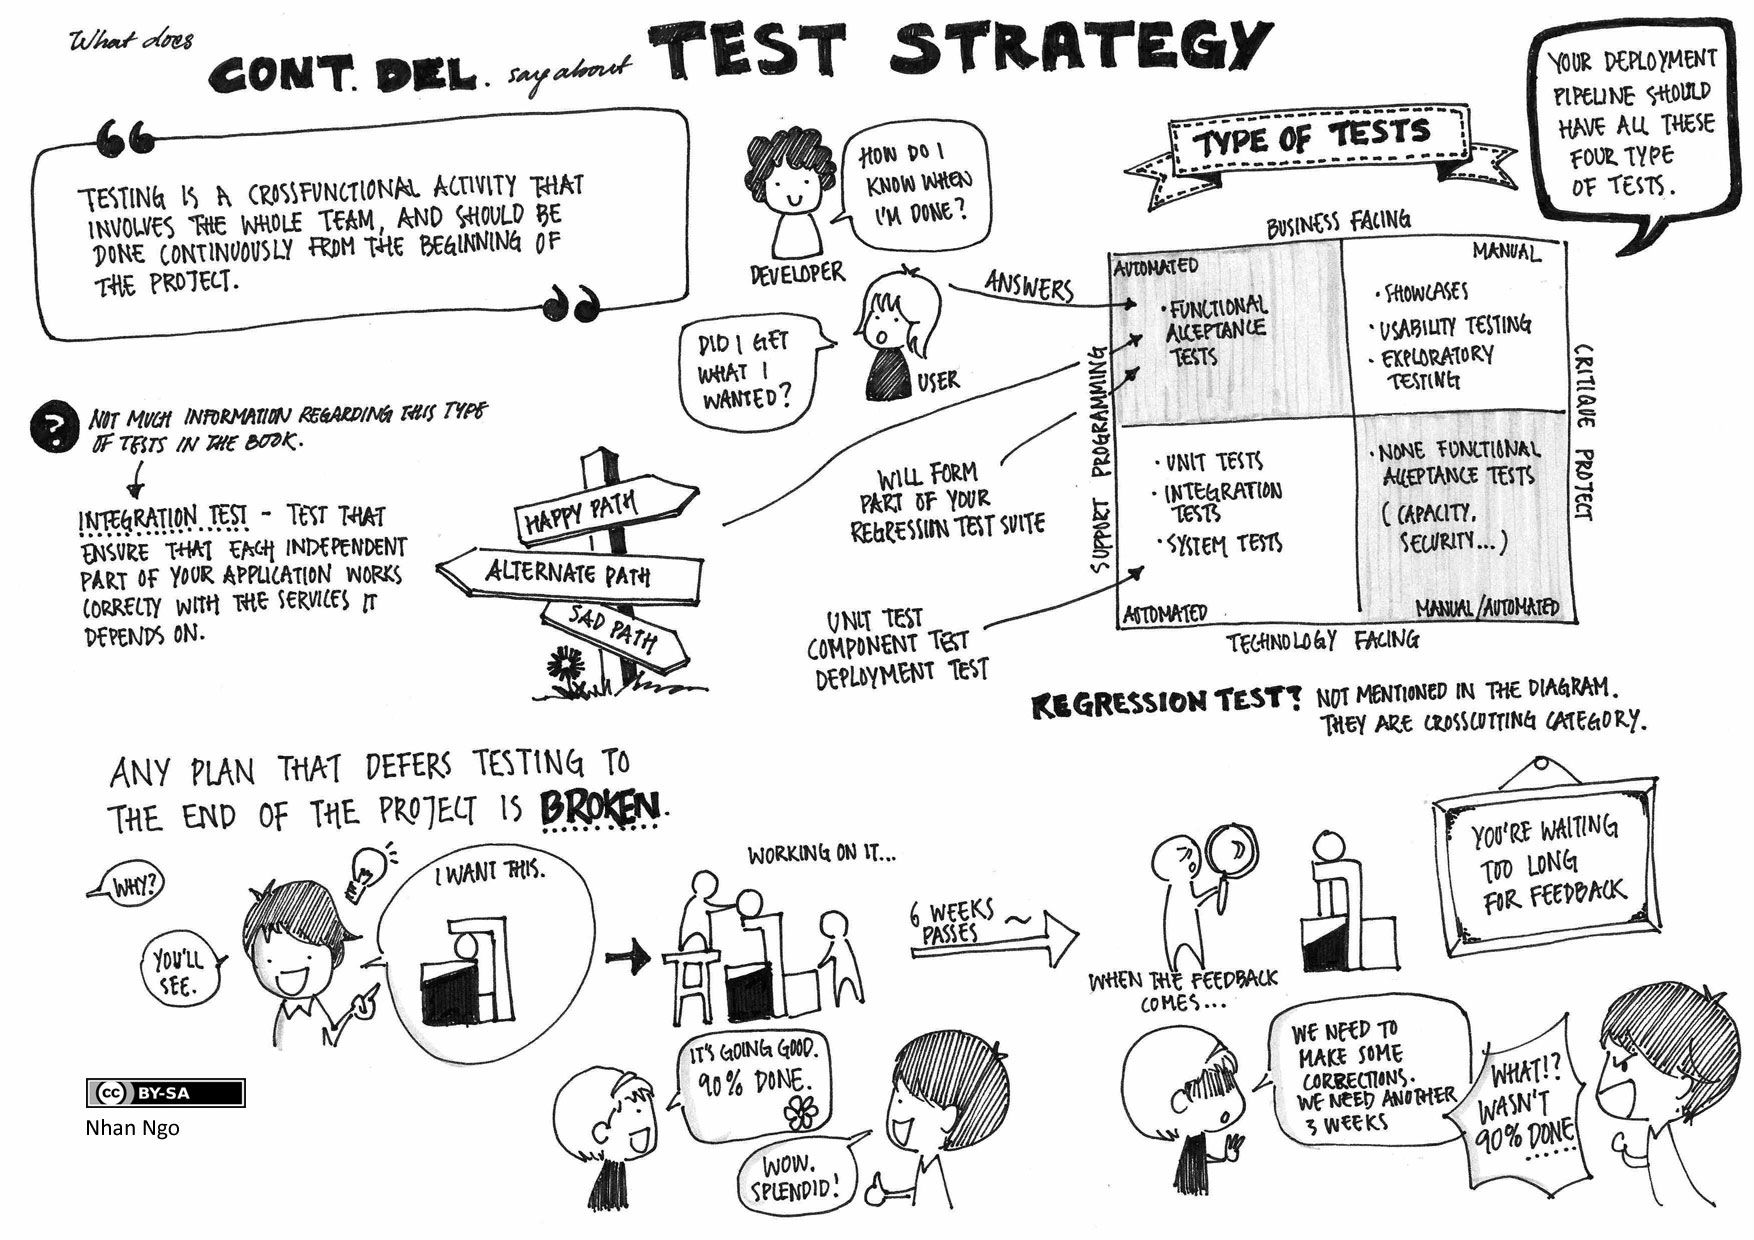 Test Strategy Visualized Post Has Great Visuals On